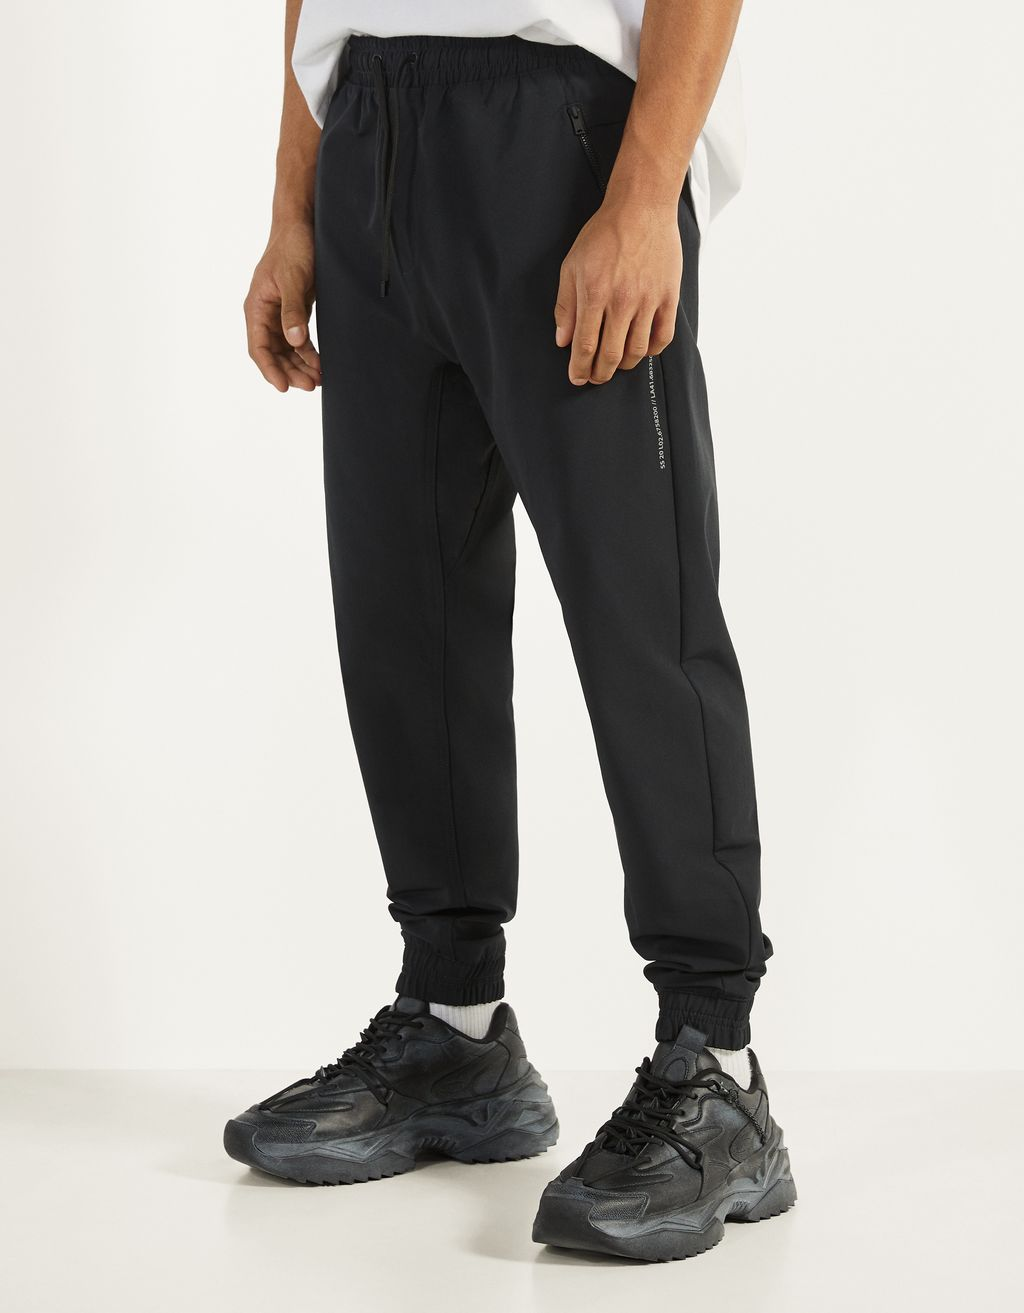 Pantalon jogger technique